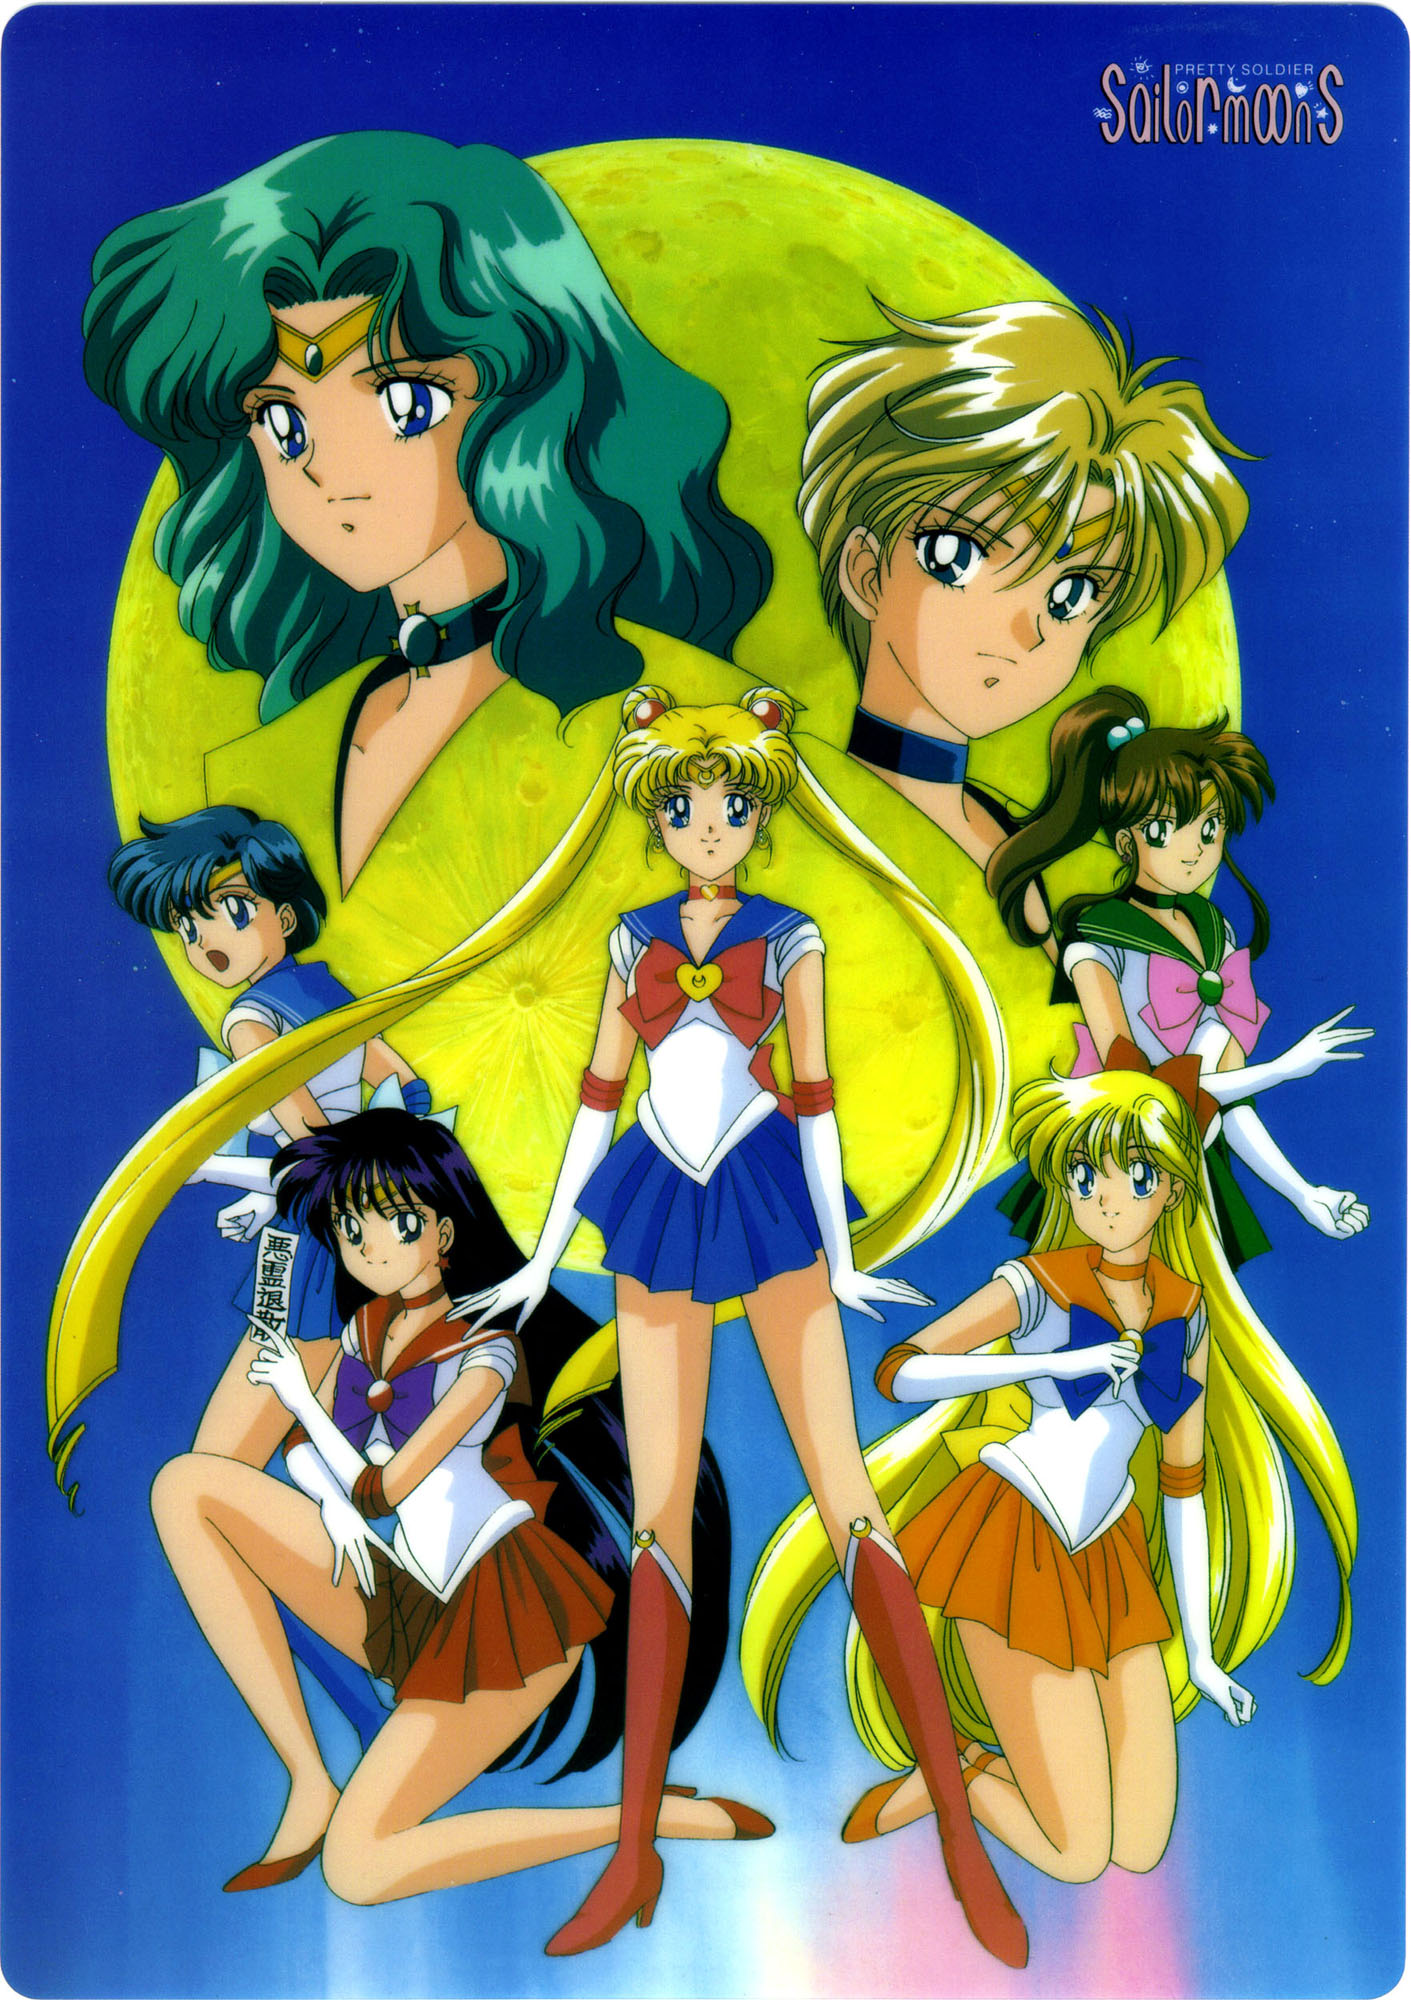 Large scan of the inner senshi and Sailor Neptune and Uranus with the moon in the background